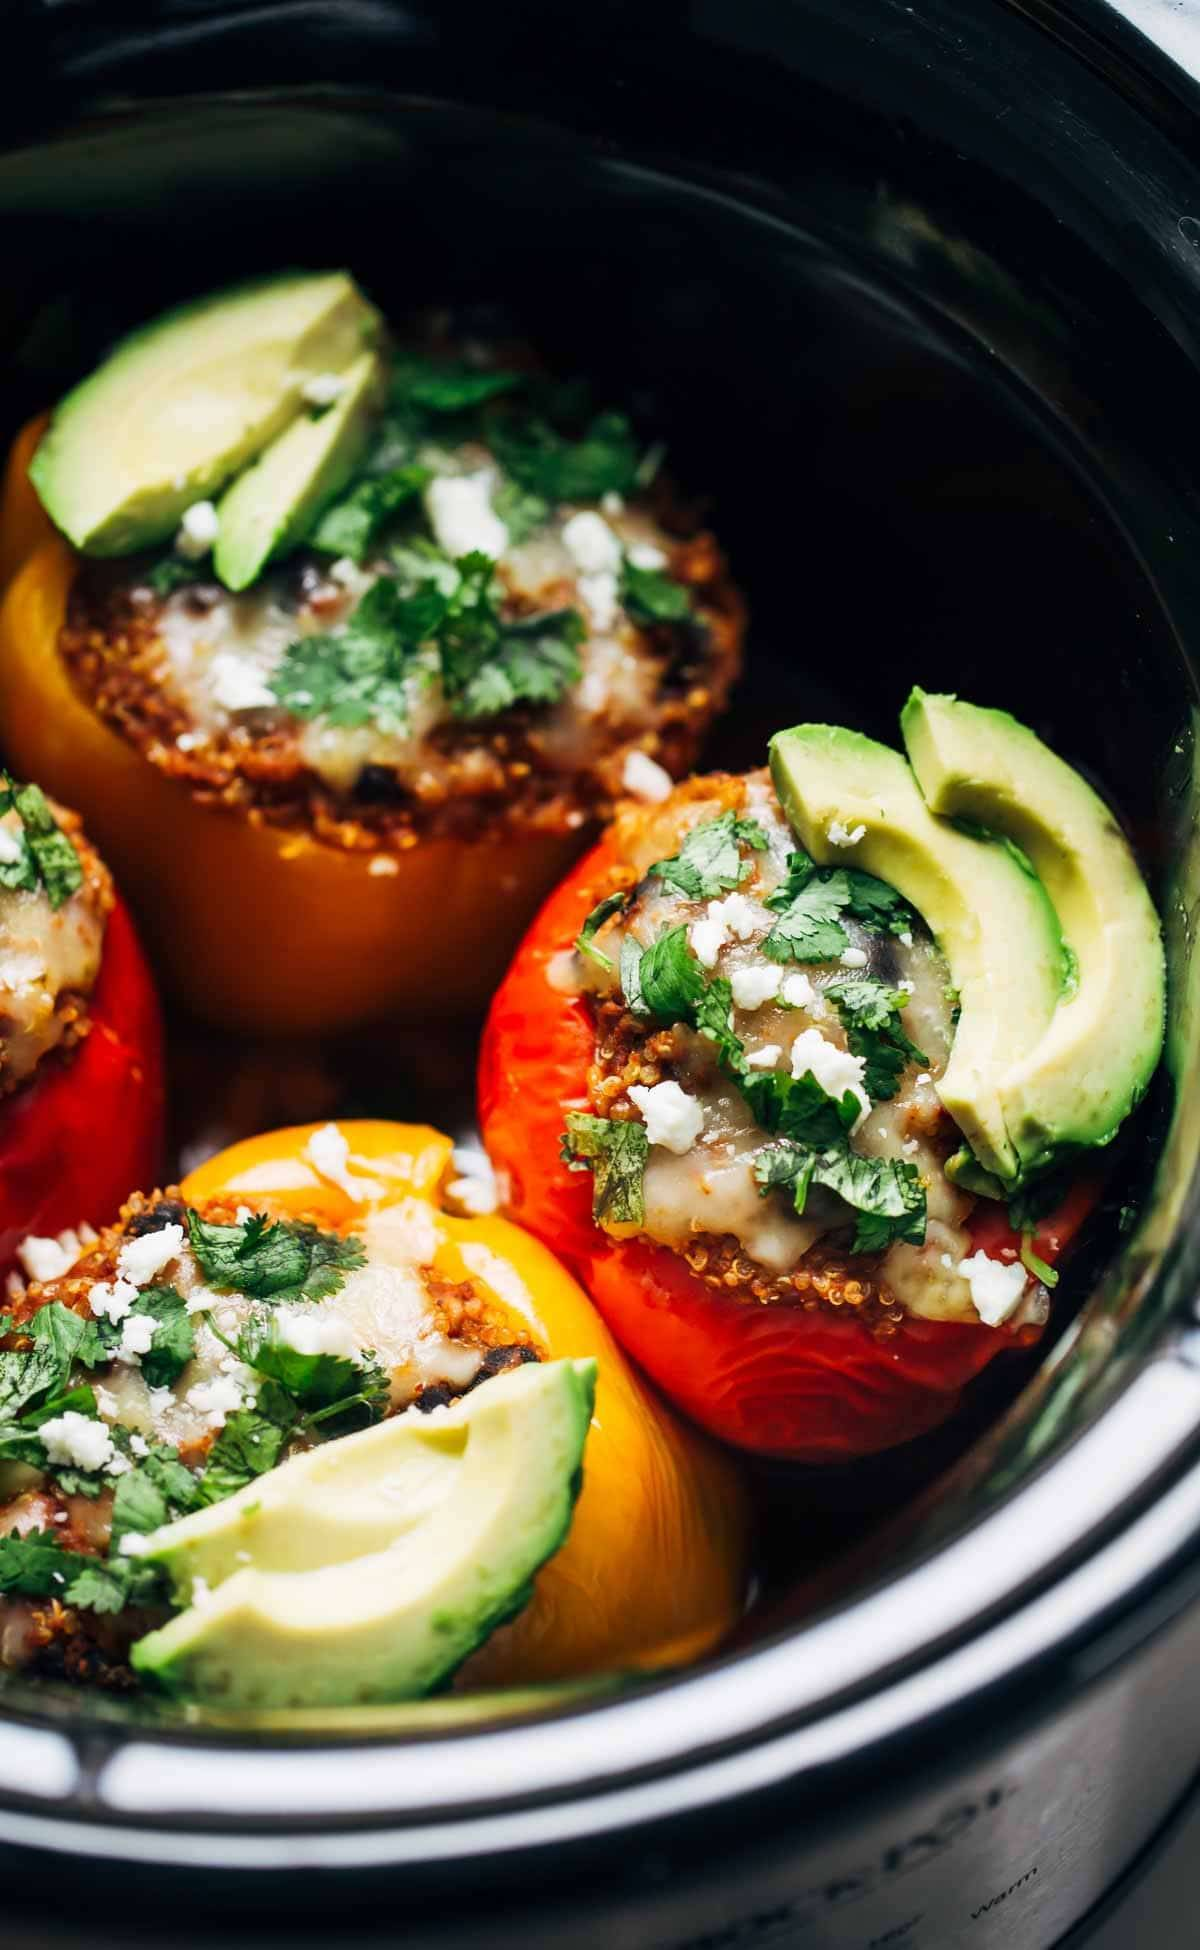 Quinoa Black Bean Crockpot Stuffed Peppers in a crock pot.